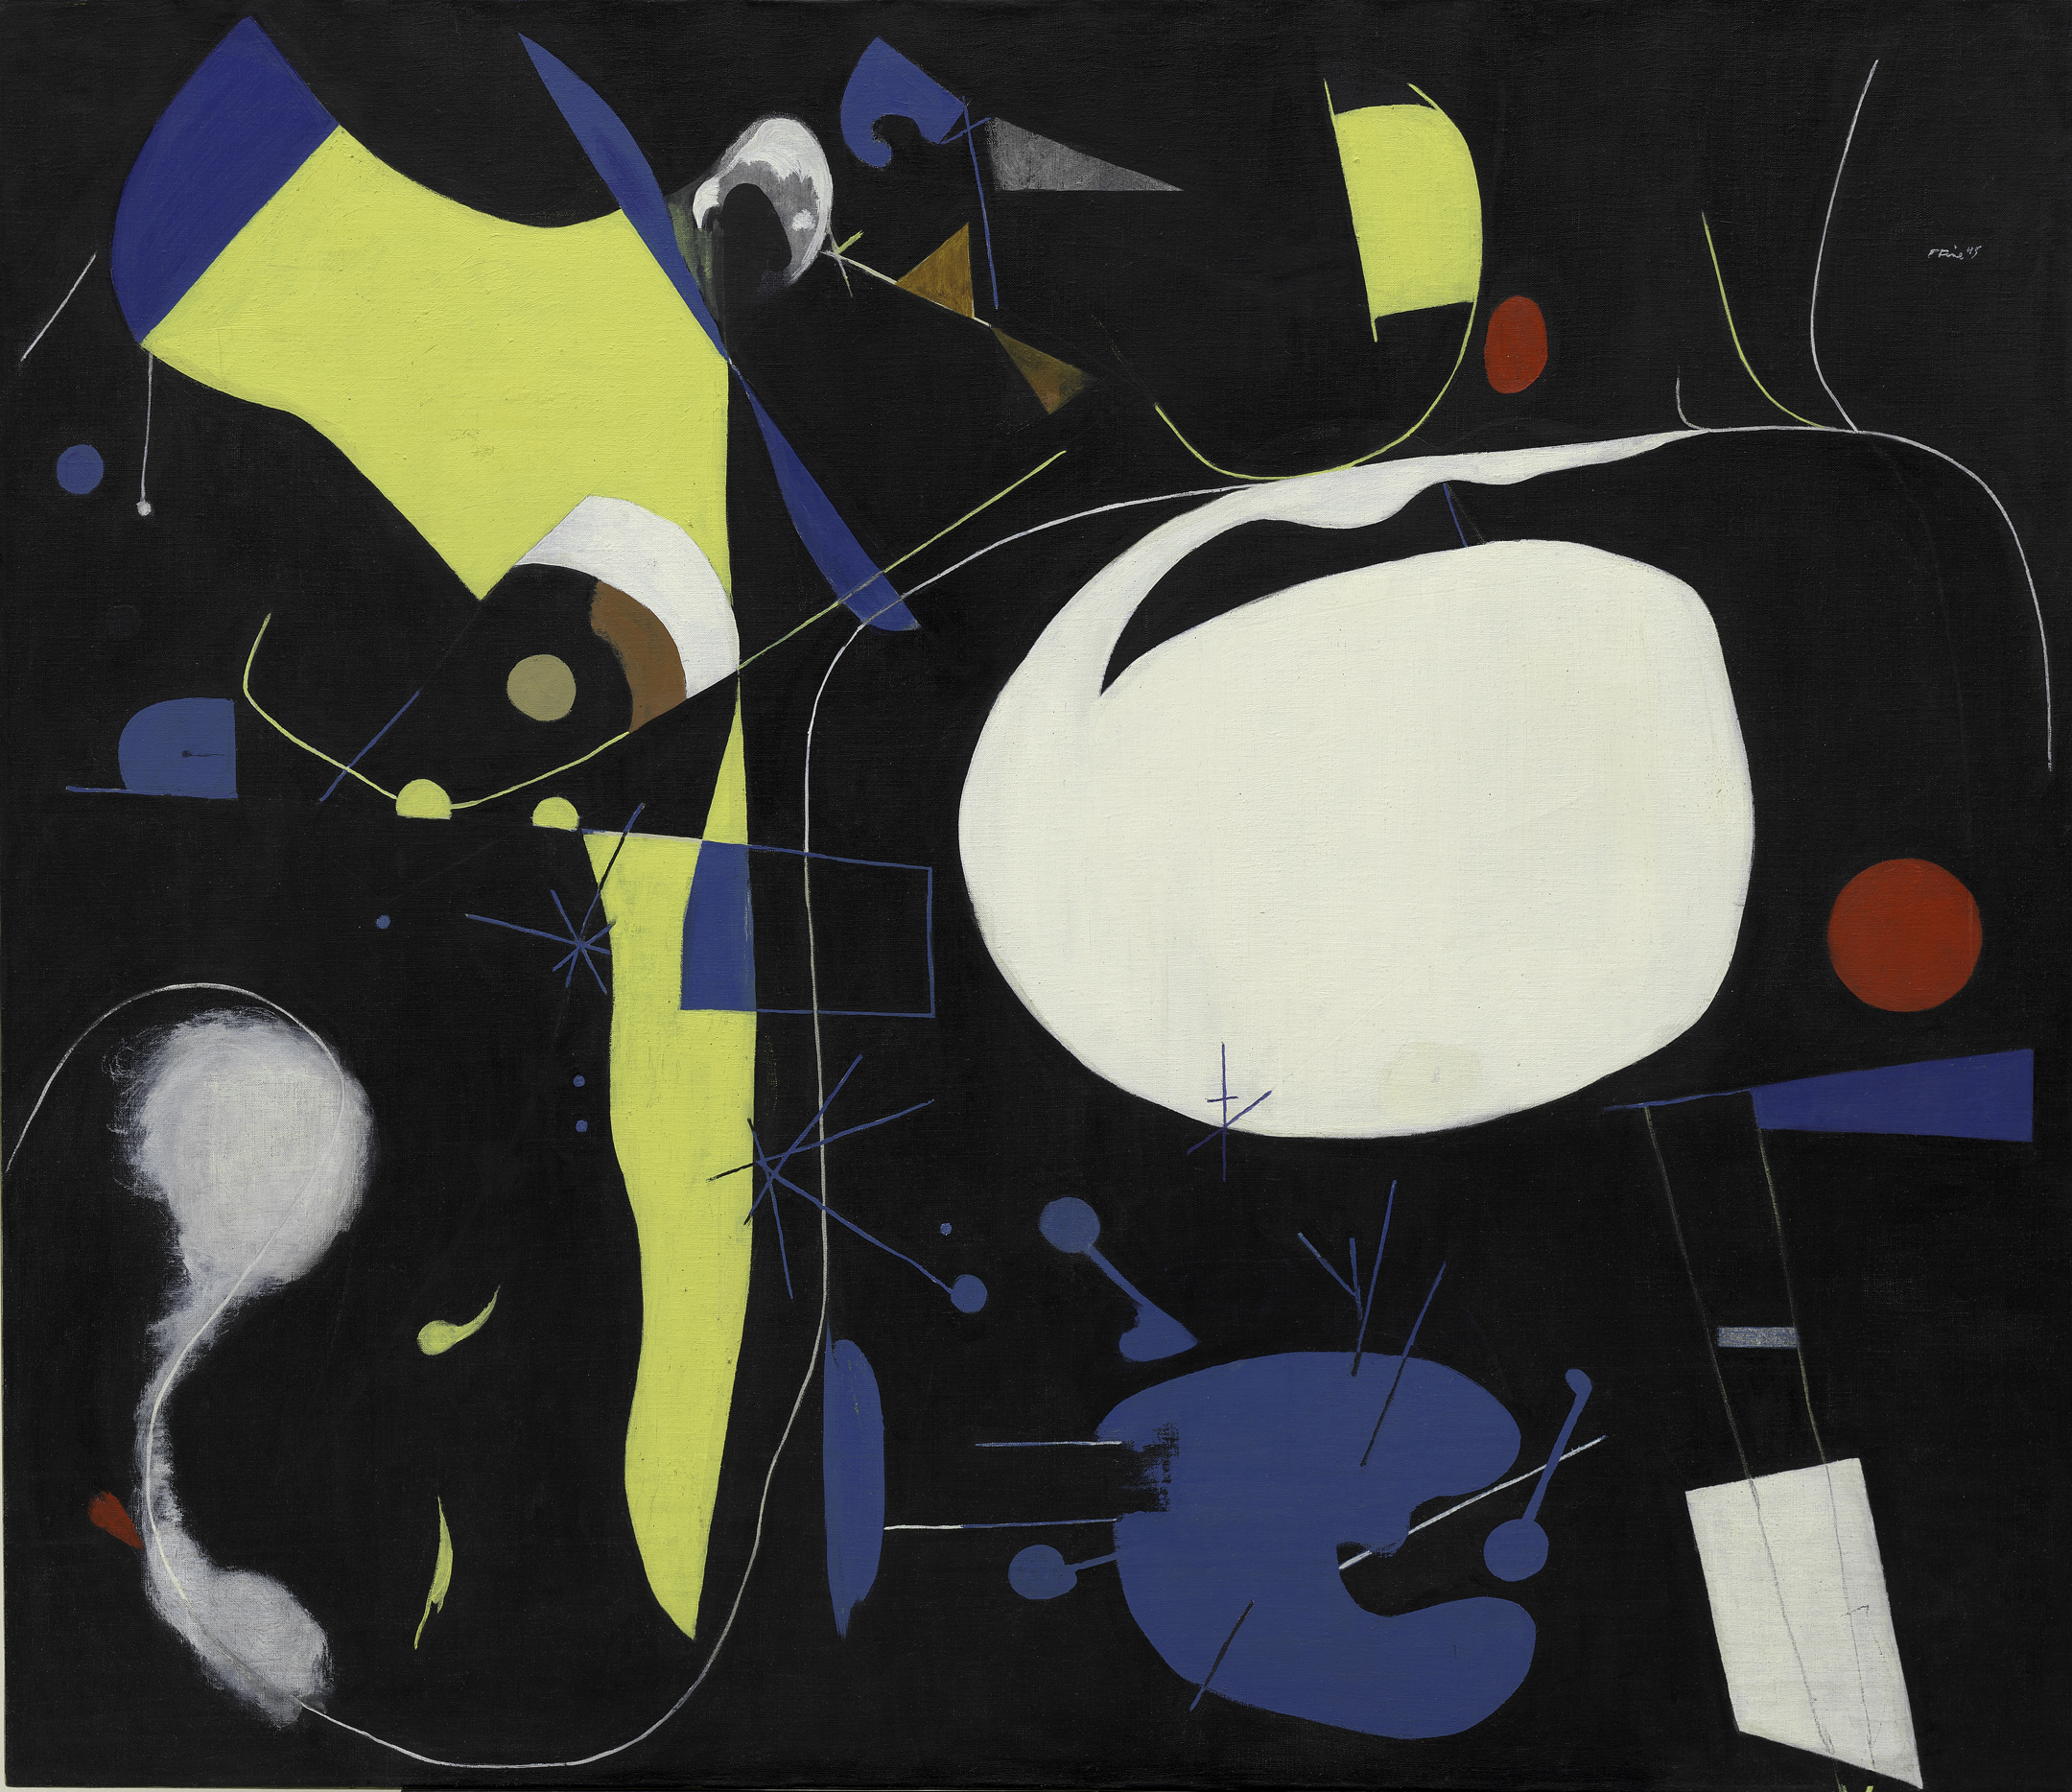 Polyphonic (1945), by Perle Fine. Oil on canvas, 96.5 x 111.8 cm. Solomon R. Guggenheim Museum, New York. © 2017 A. E. Artworks, LLC.